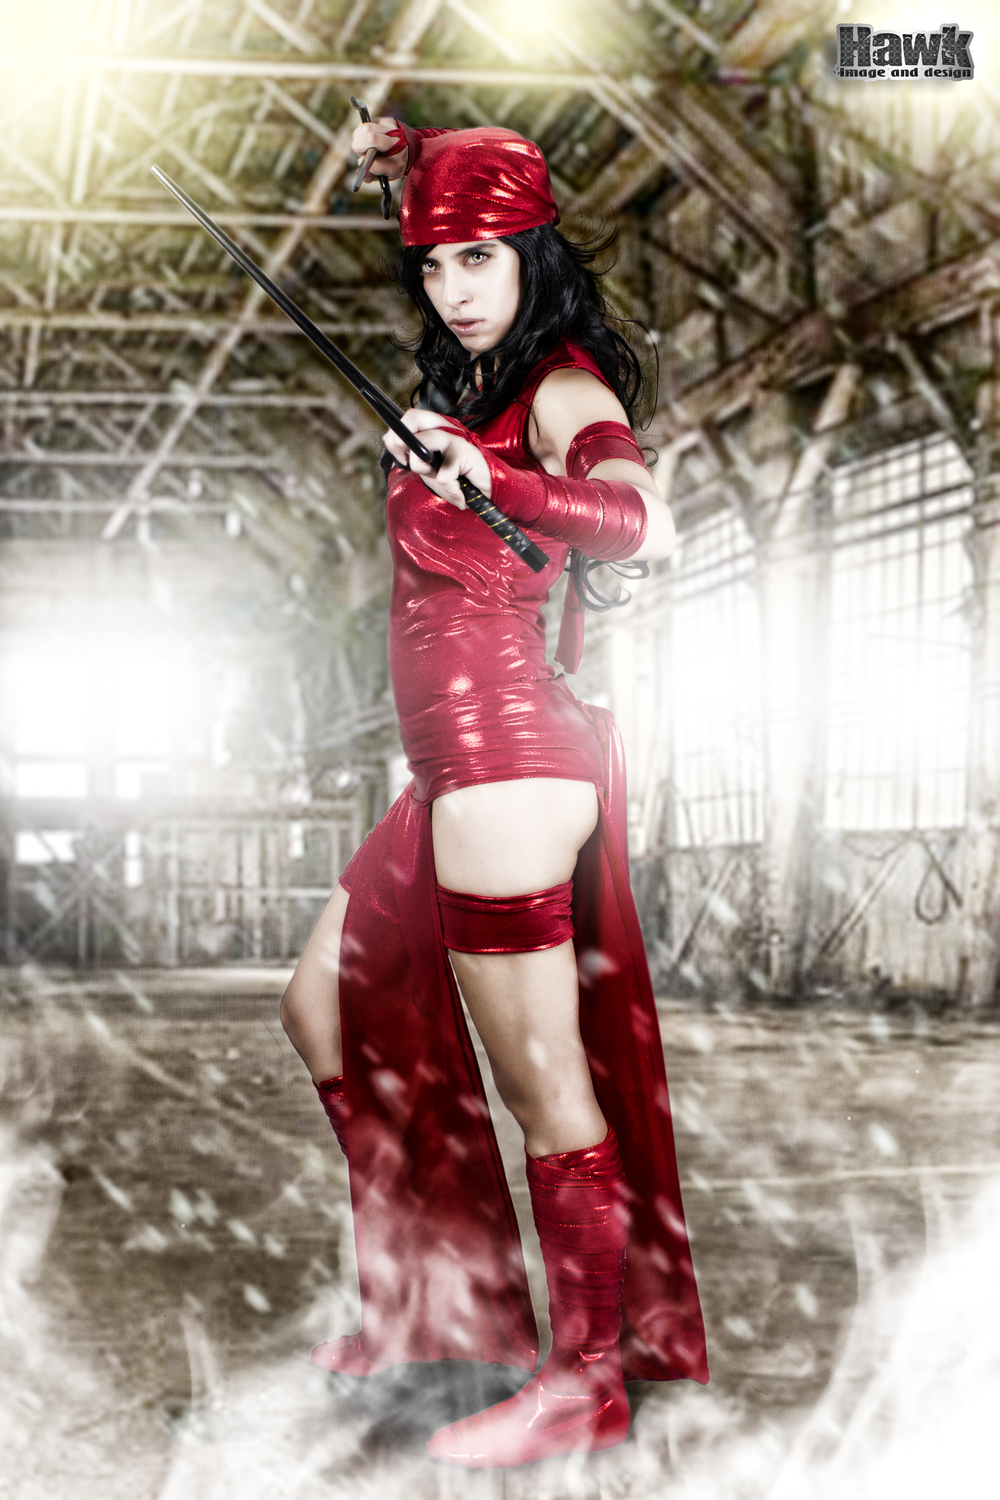 Larxenne is Elektra | Photo by:Hawk Image and Design